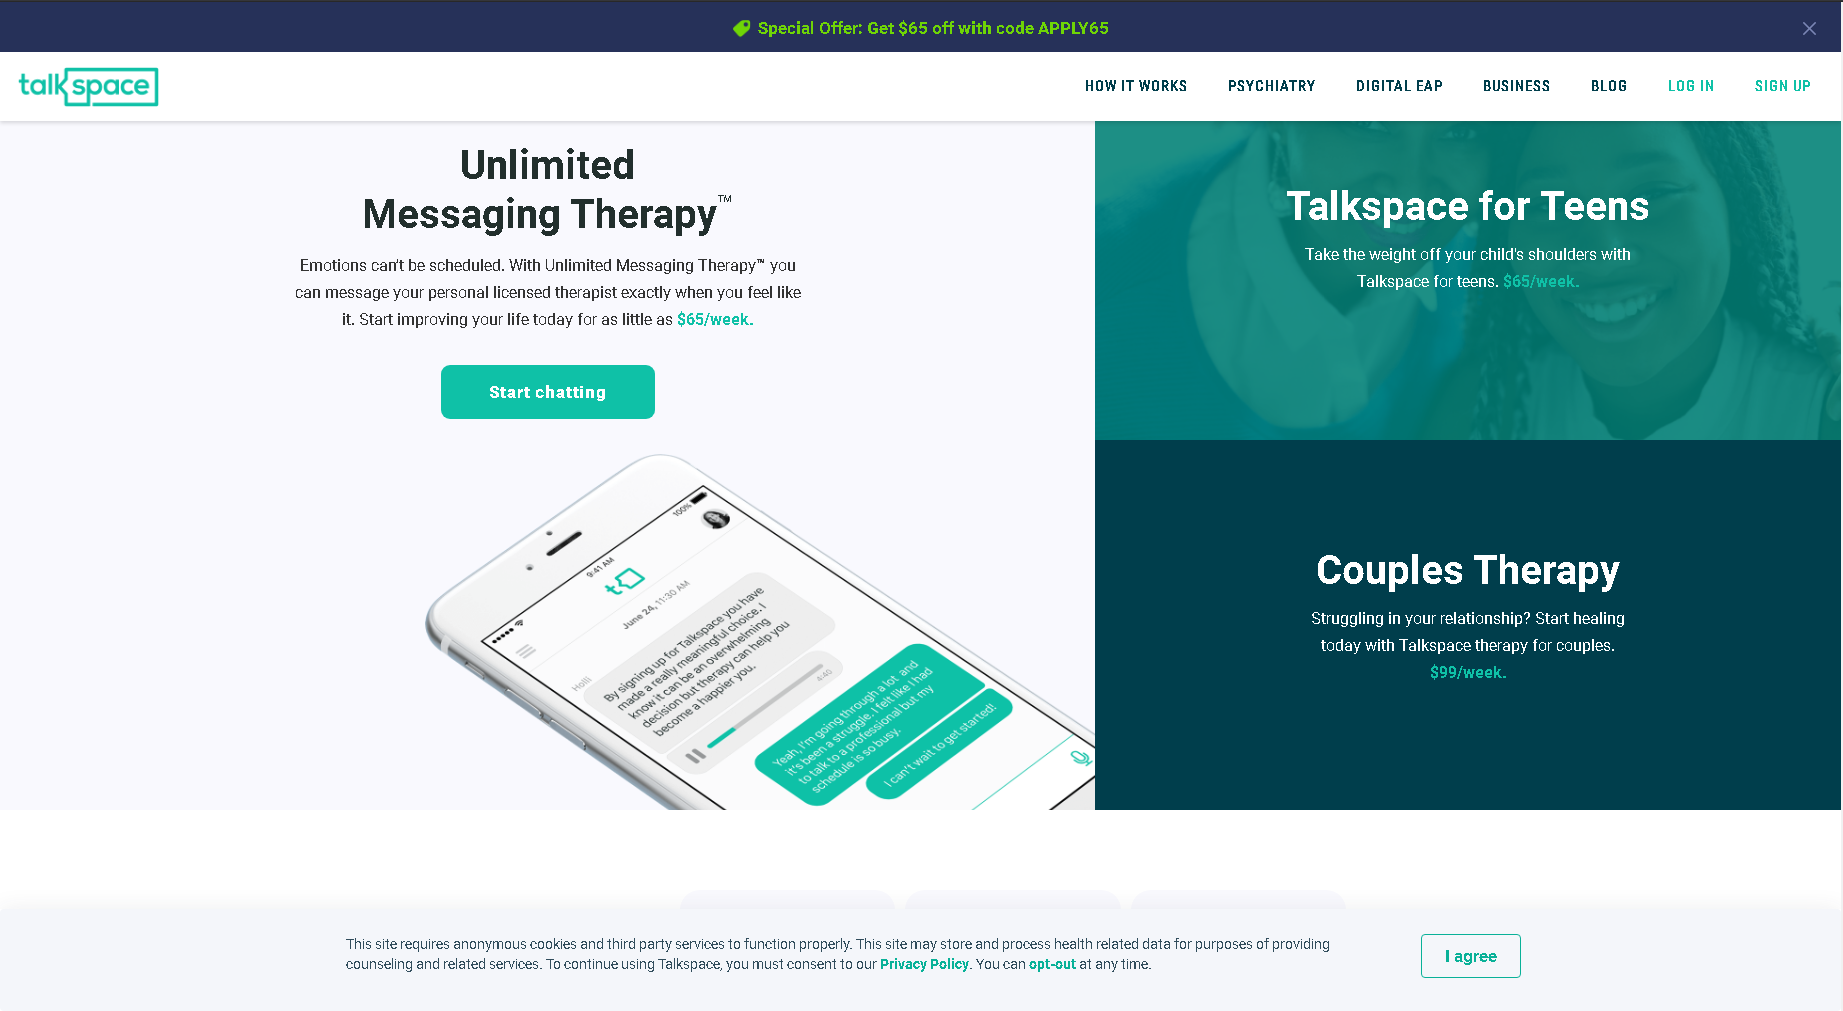 talkspace%20online%20therapy%20services-5e90864f22a1c.PNG